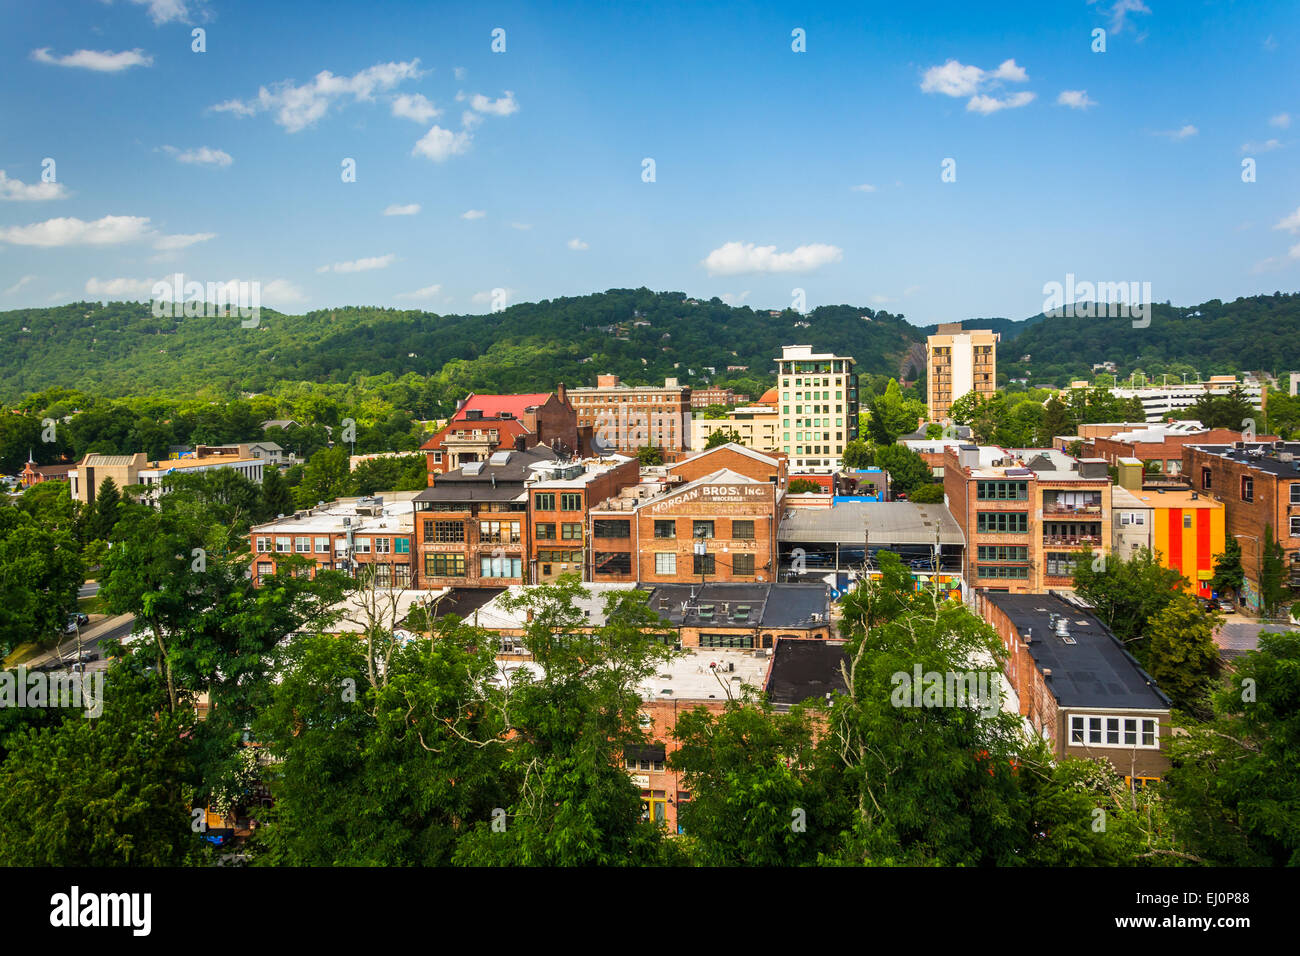 View of buildings from a parking garage in Asheville, North Carolina. - Stock Image